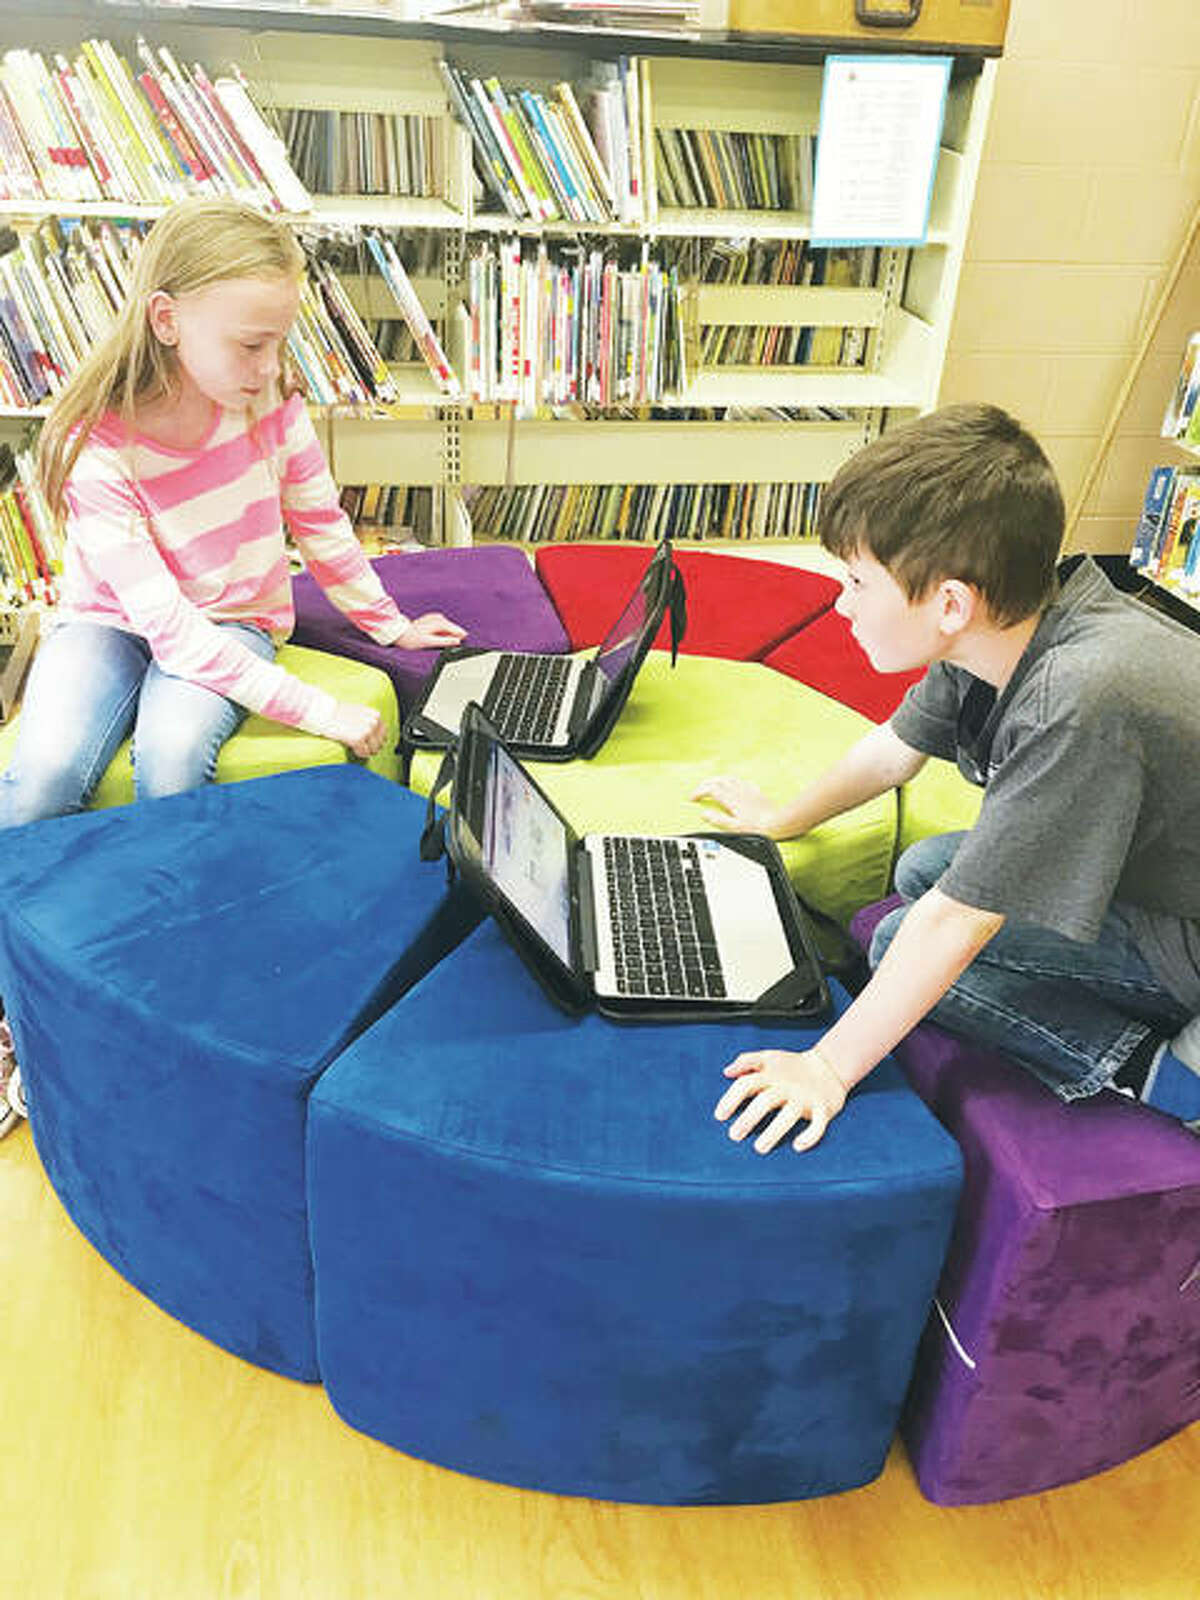 Fourth-grade students Claire Settles and Tucker Durbin work together on their Chromebooks, seated comfortably, which was a major priority when it came to students' wants for the new library media center. Teachers visited classrooms and placed suggestion boxes for youngsters' ideas, all of which were read, Mount Olive reading teacher Mary Griffel said.